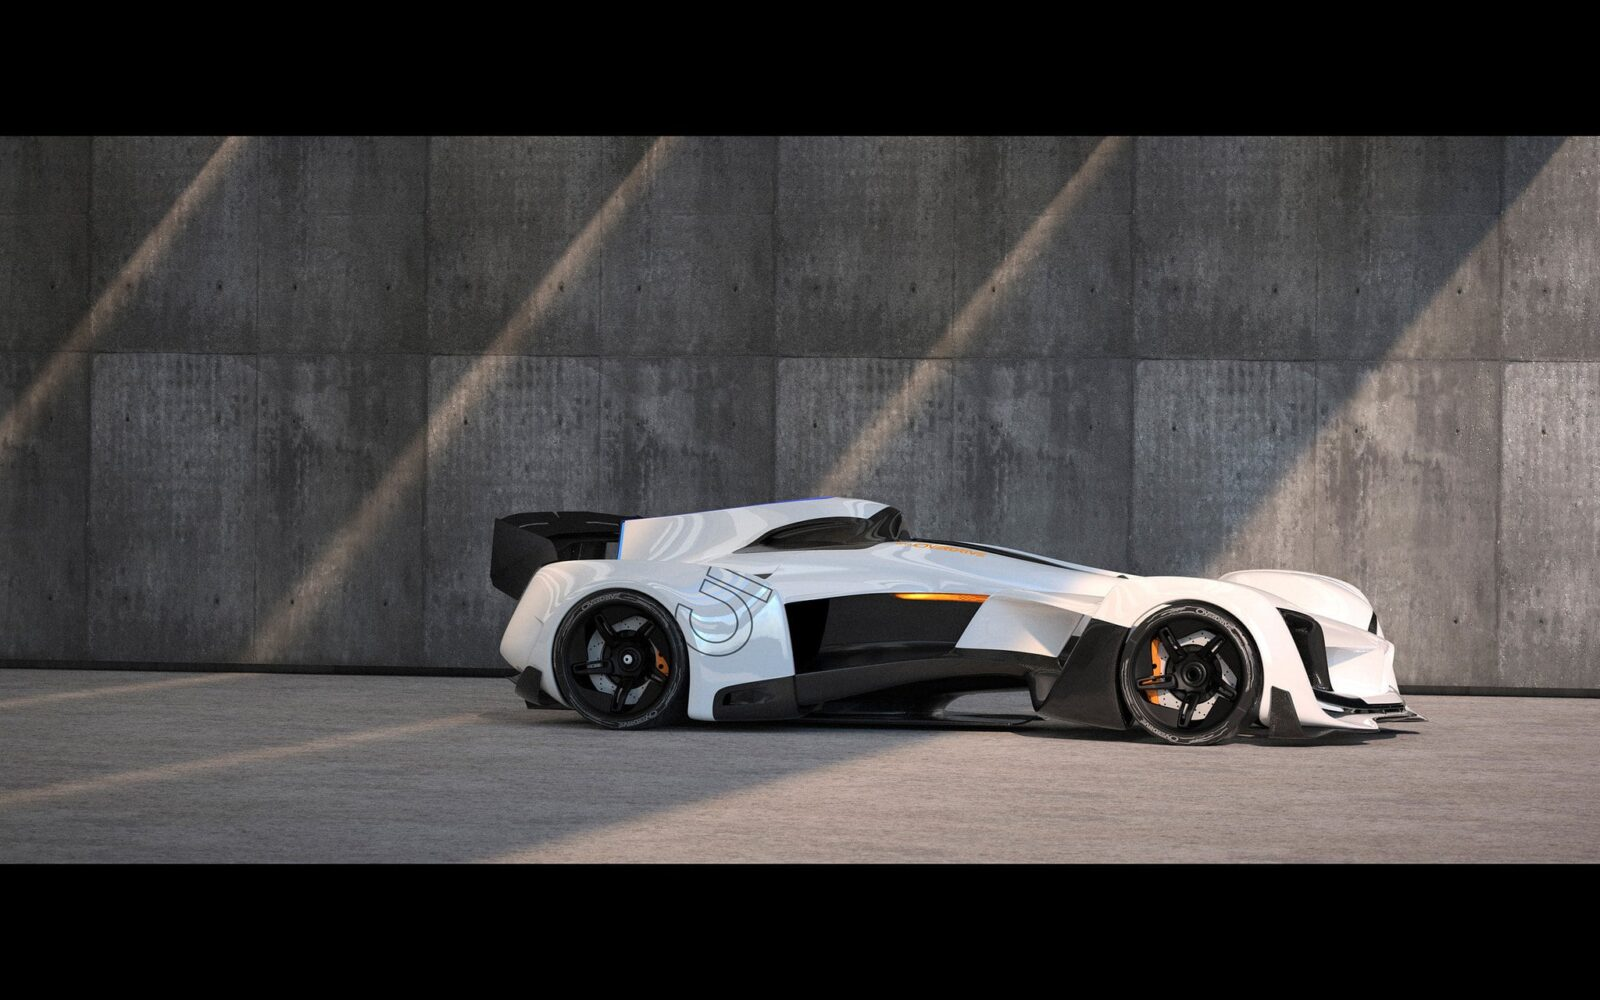 2016 Anki RS concept gallery